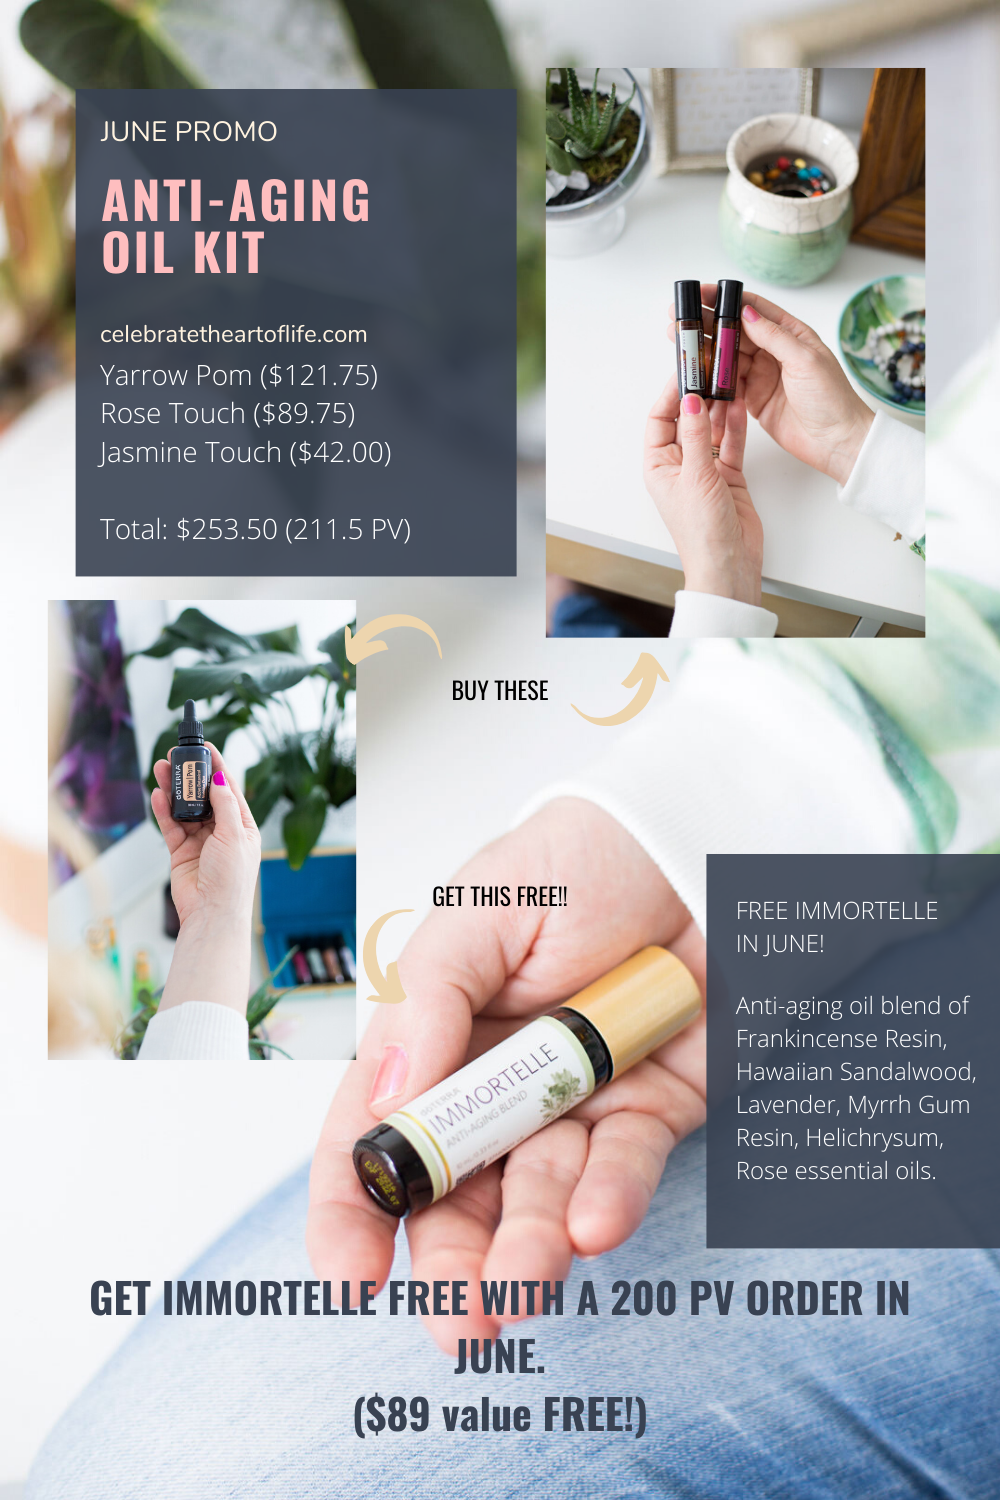 FREE doTERRA Immortelle anti-aging essential oil blend